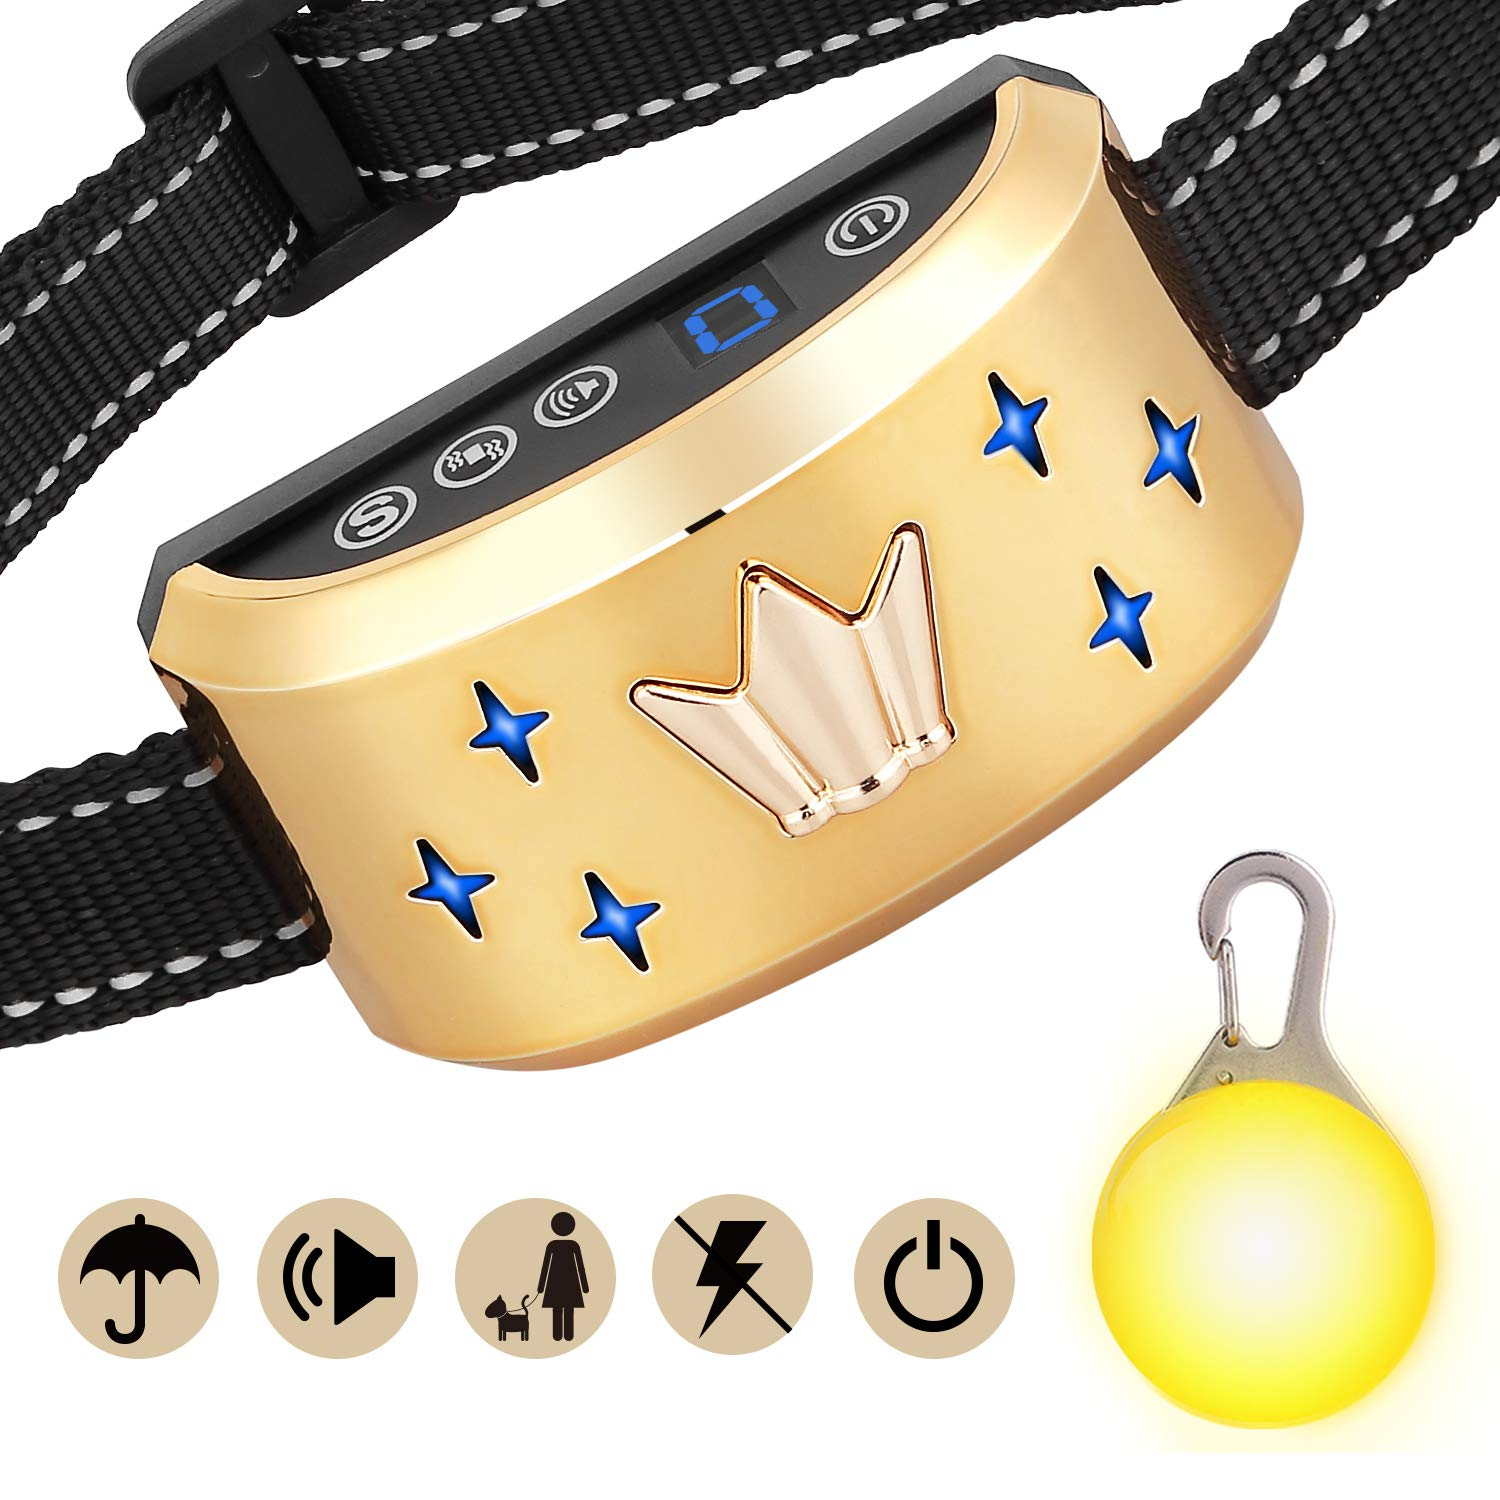 GoPetee Dog Anti Bark Collar Stop Barking Sound and Vibration with Switch No Shock Collar Pet Trainer Collar Come with LED light for Small Medium Large Dogs (Crown, Upgraded version)